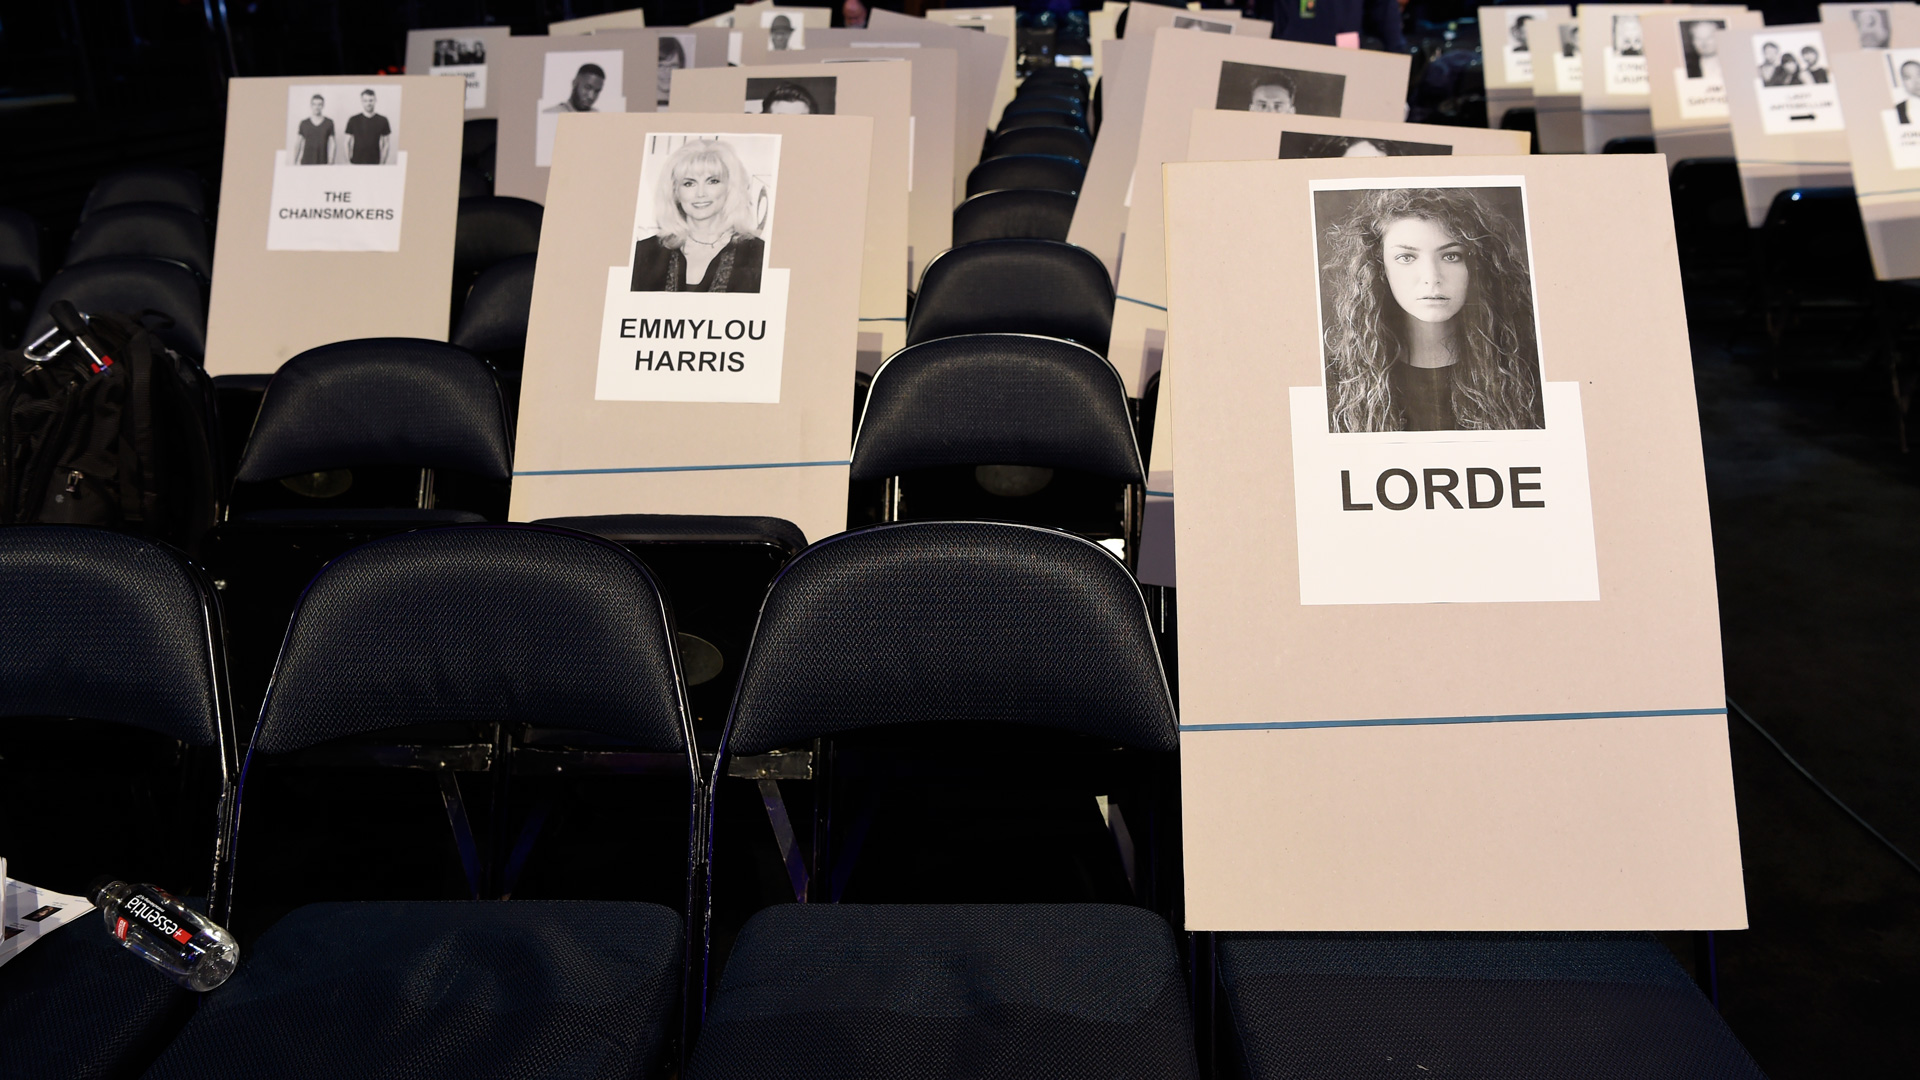 Lorde, Emmylou Harris, and The Chainsmokers will all be taking in the GRAMMY experience from these spots.